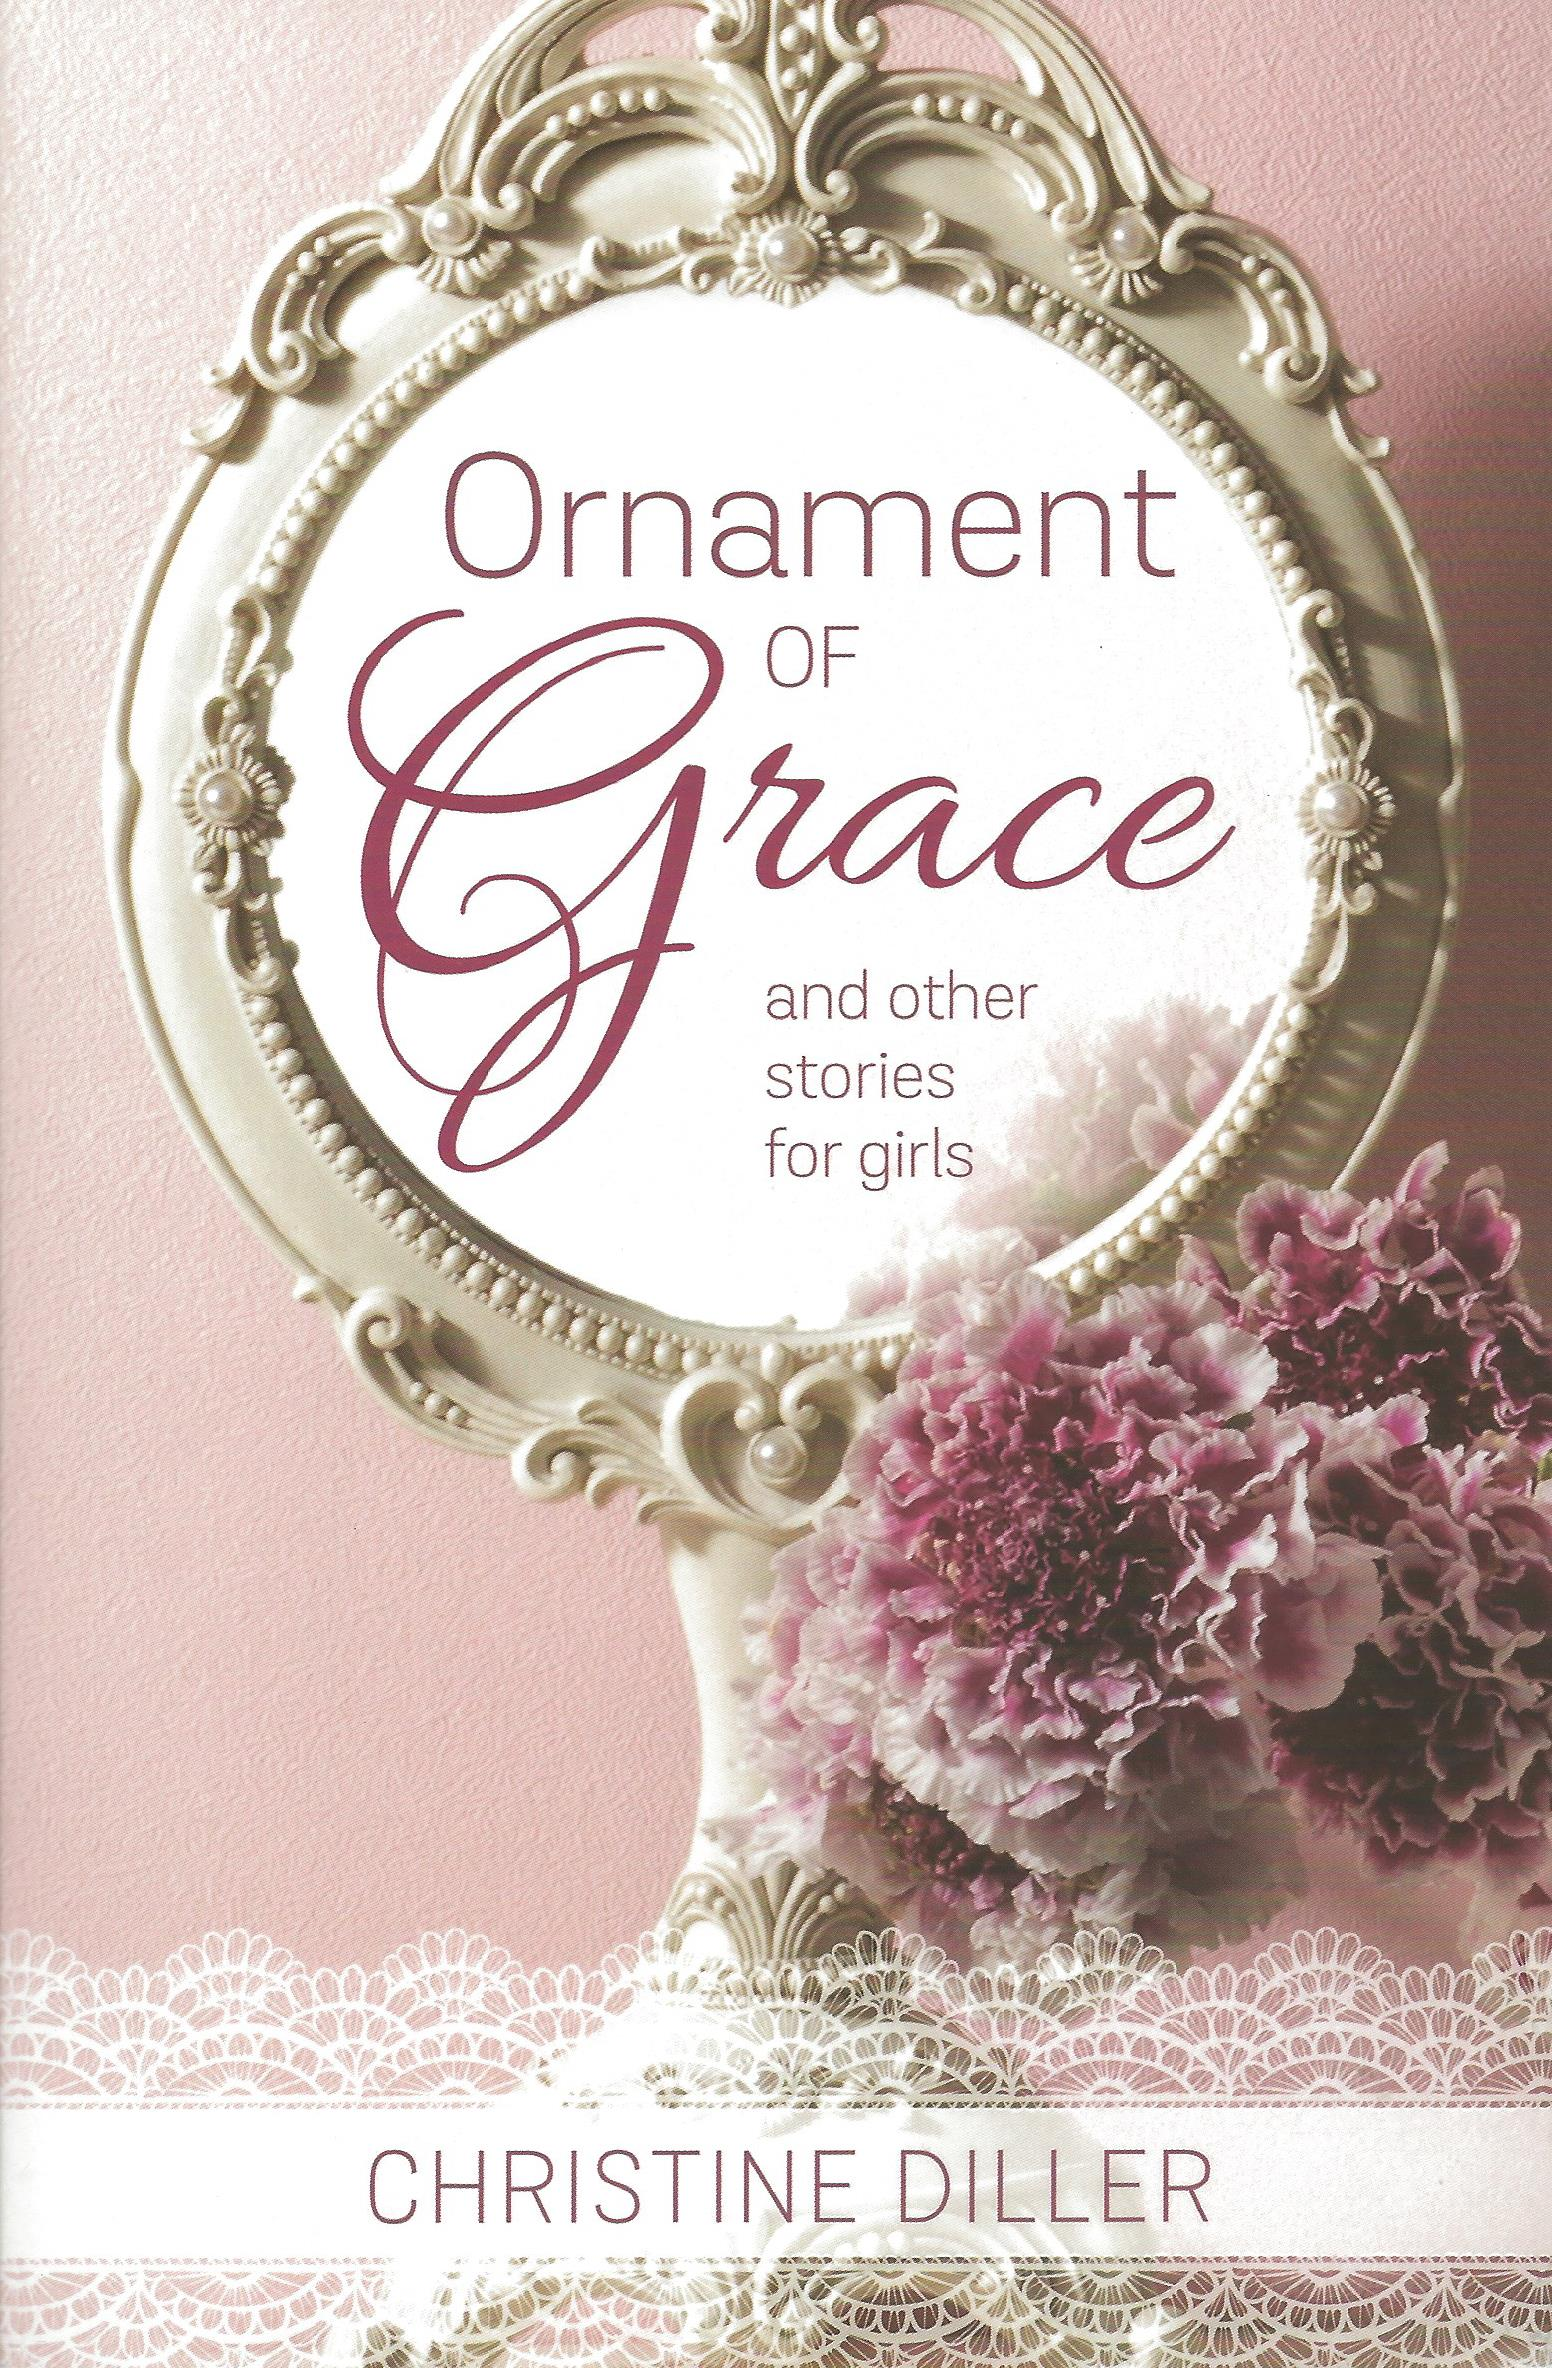 ORNAMENT OF GRACE Christine Diller